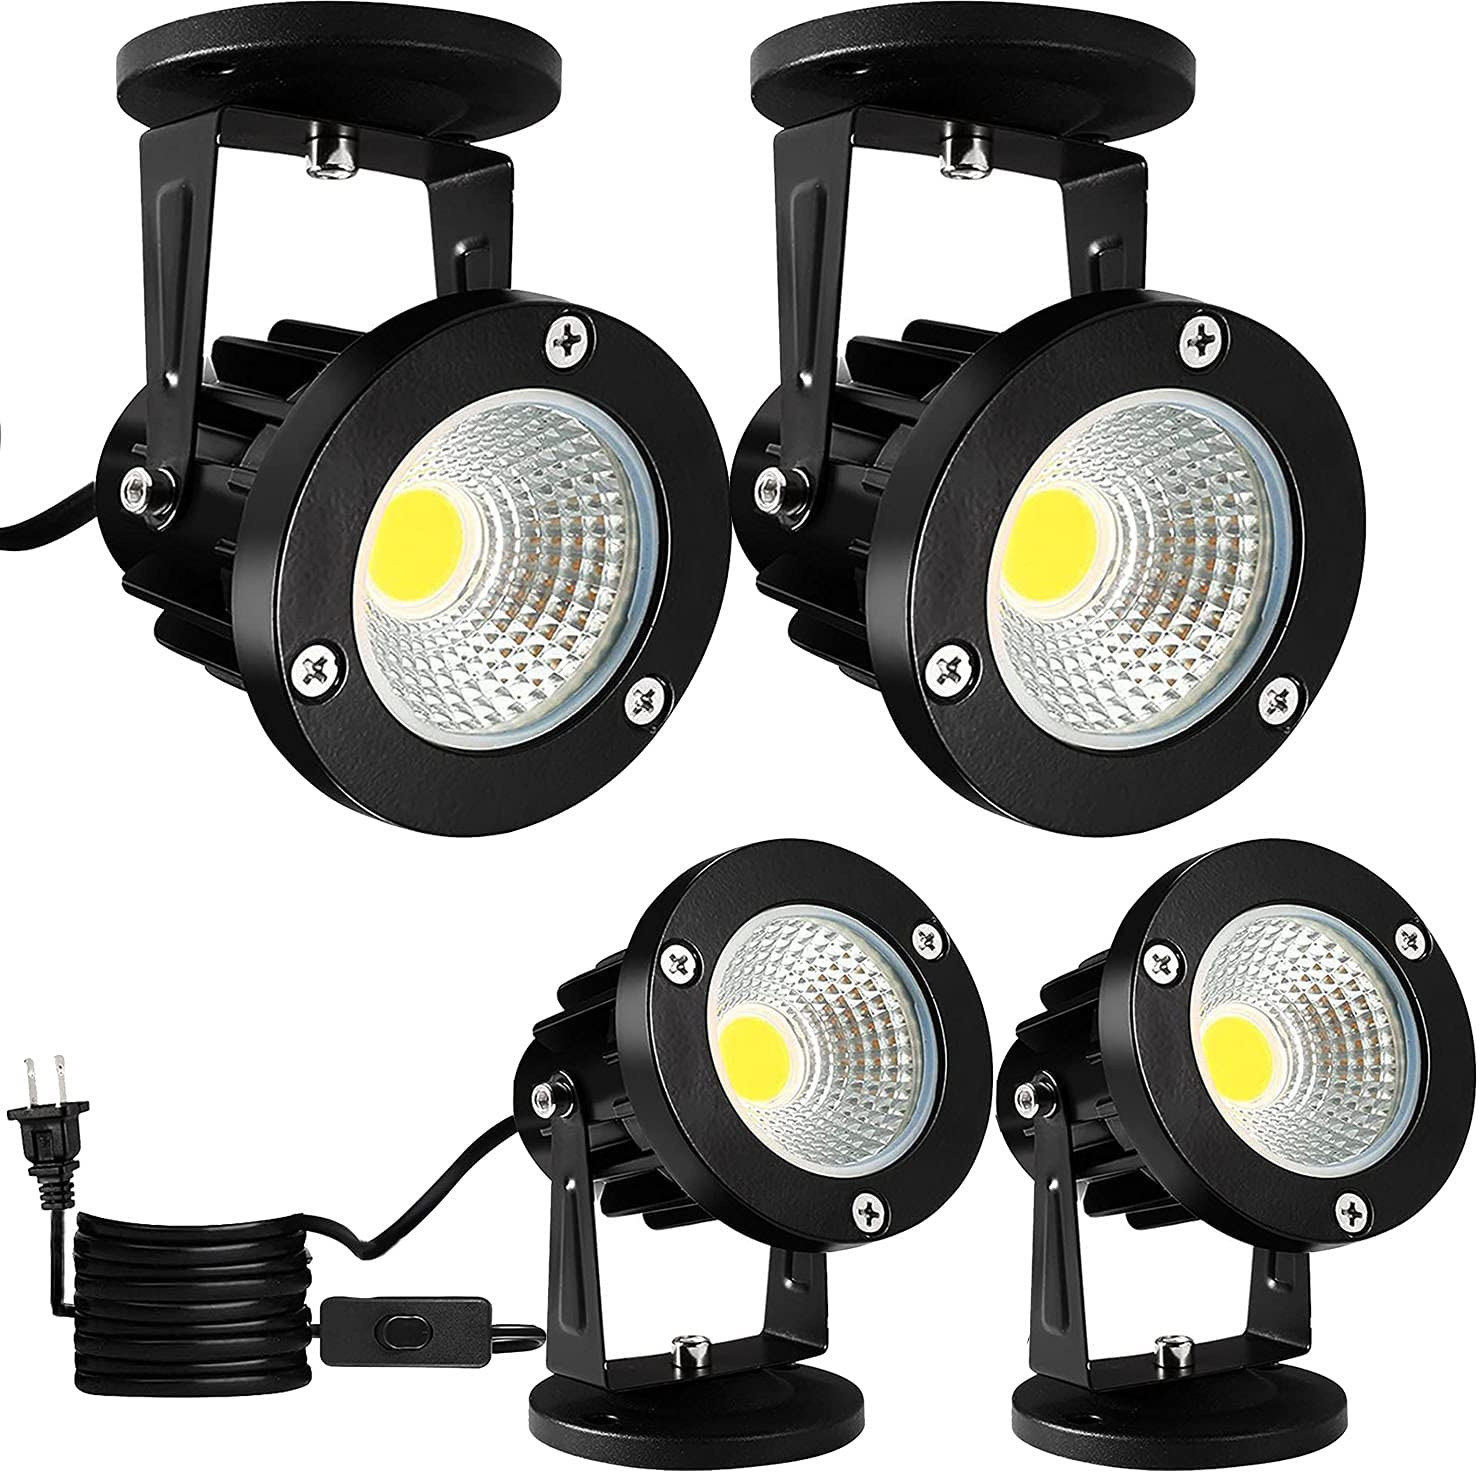 Led Spotlights Cheap super special price Outdoor High quality new LCARED Warm Spot White Lights Indoor 12W